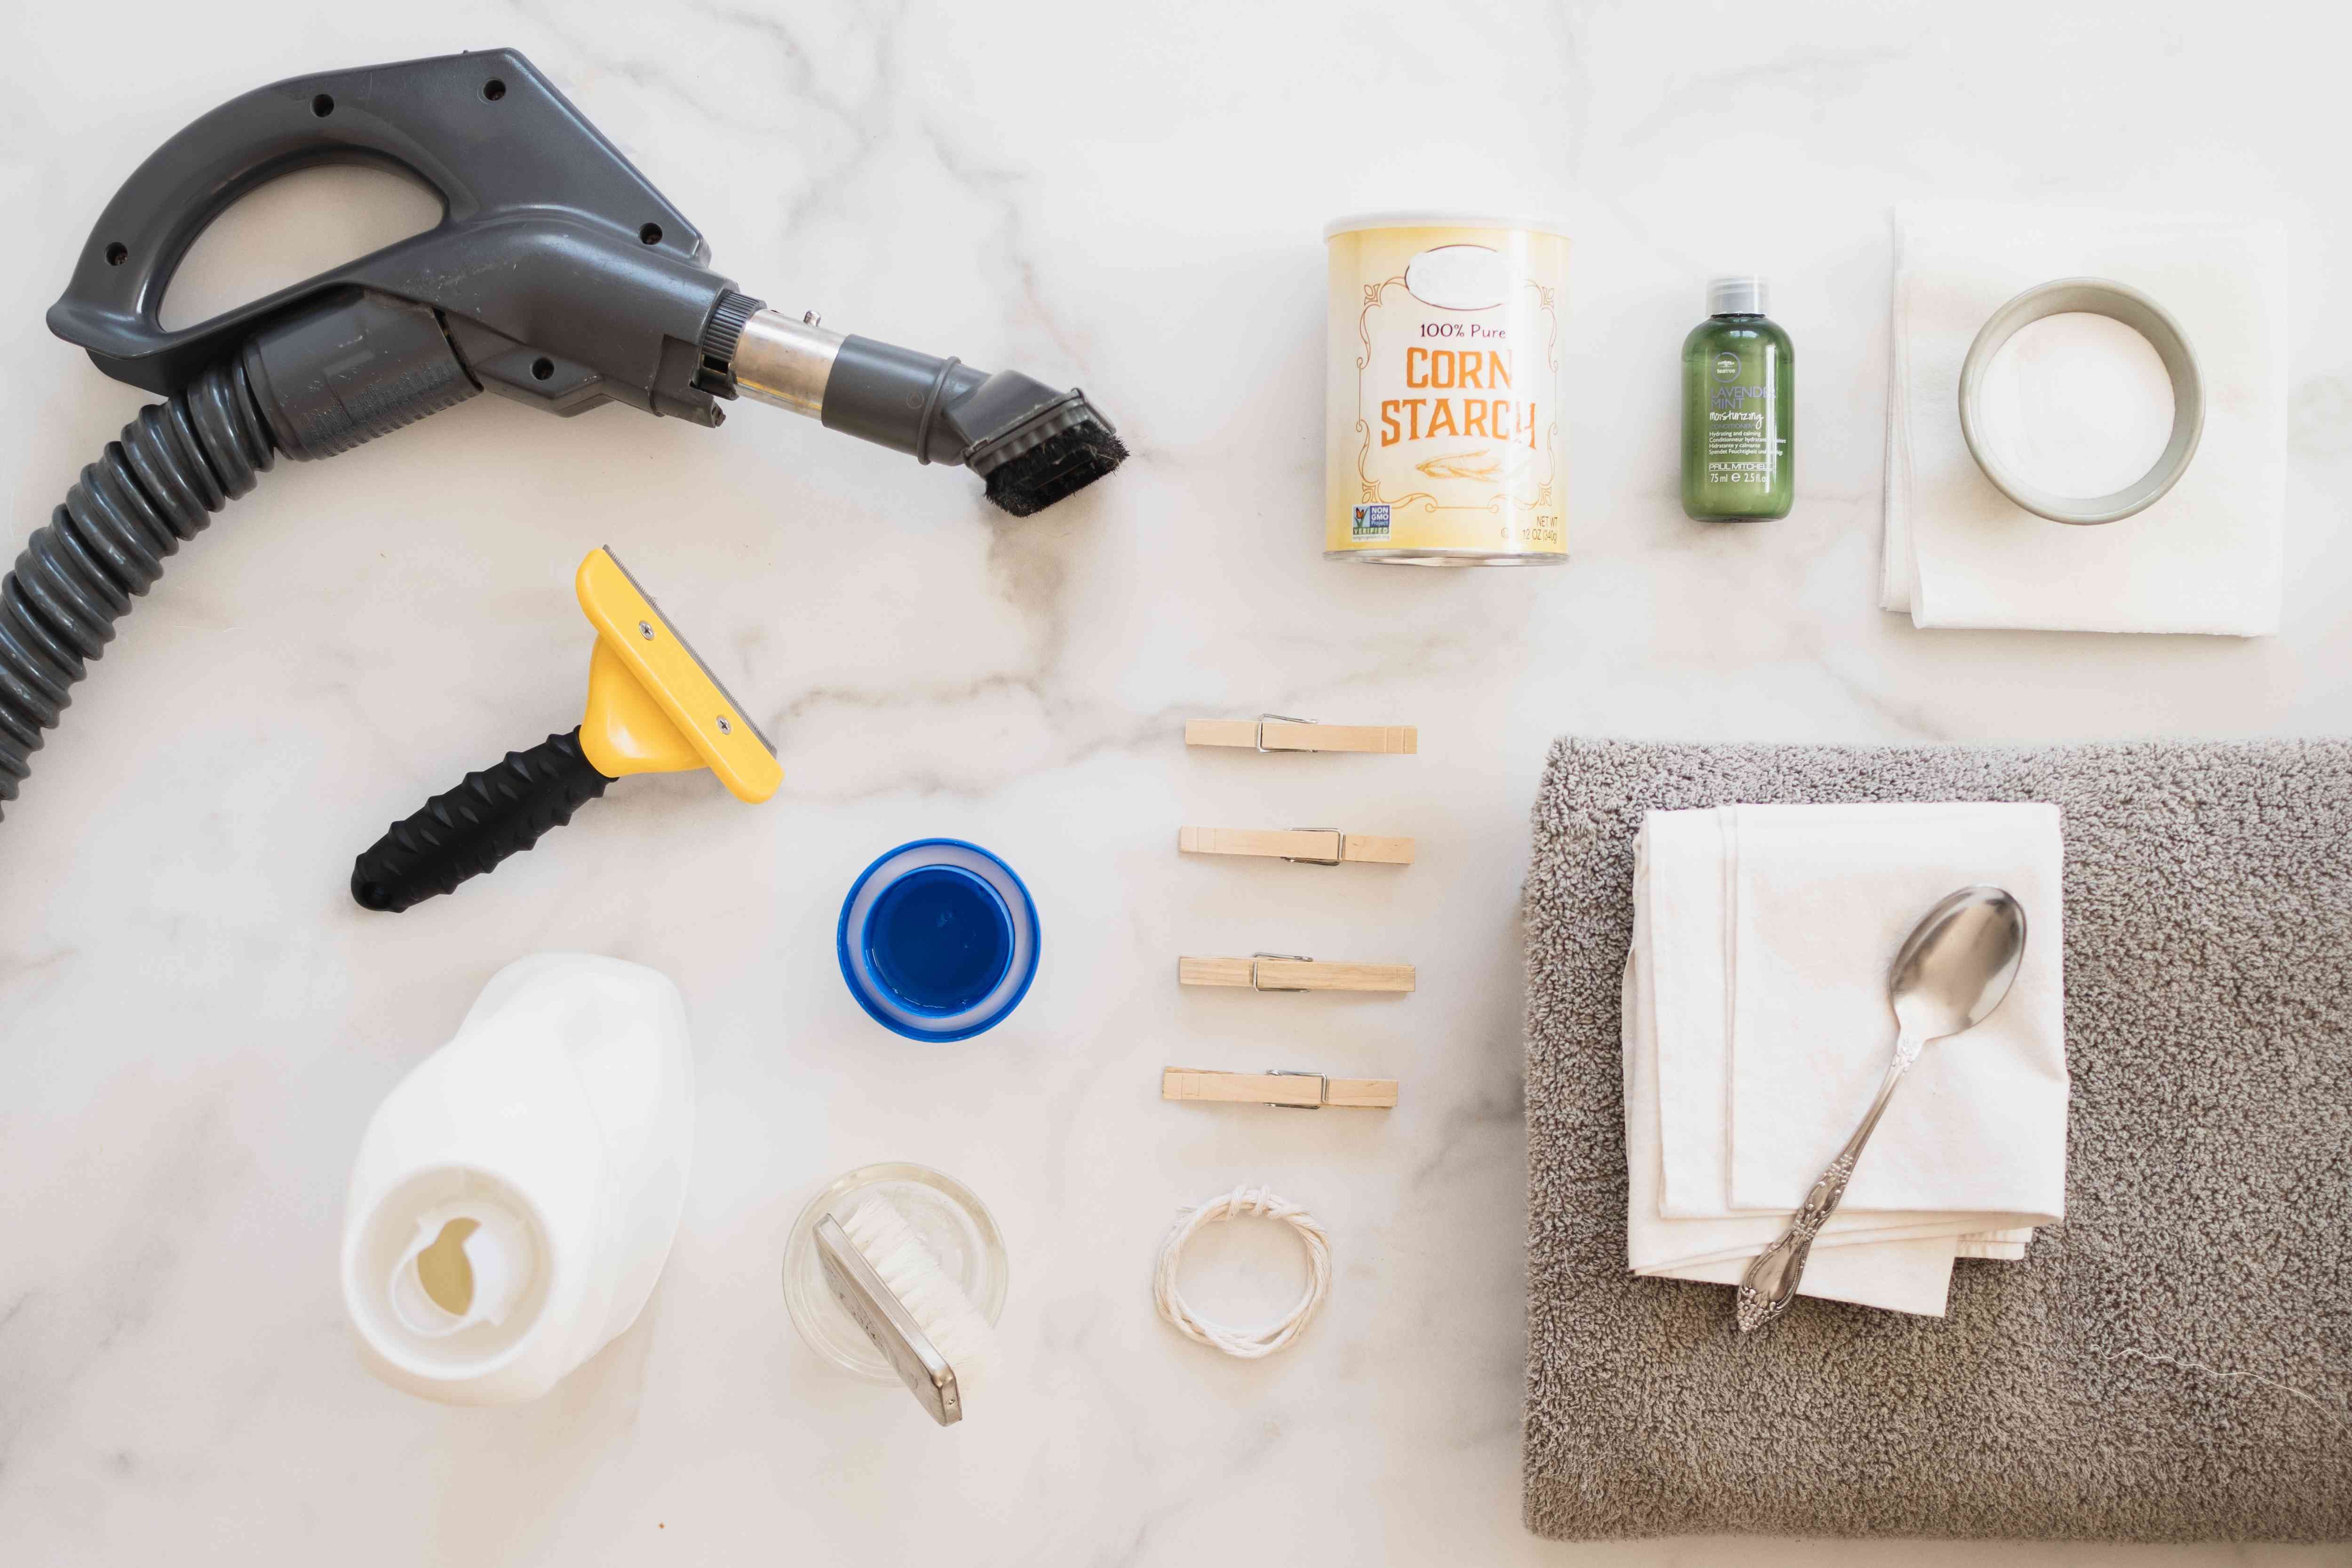 Materials and tools to clean sheepskin rug